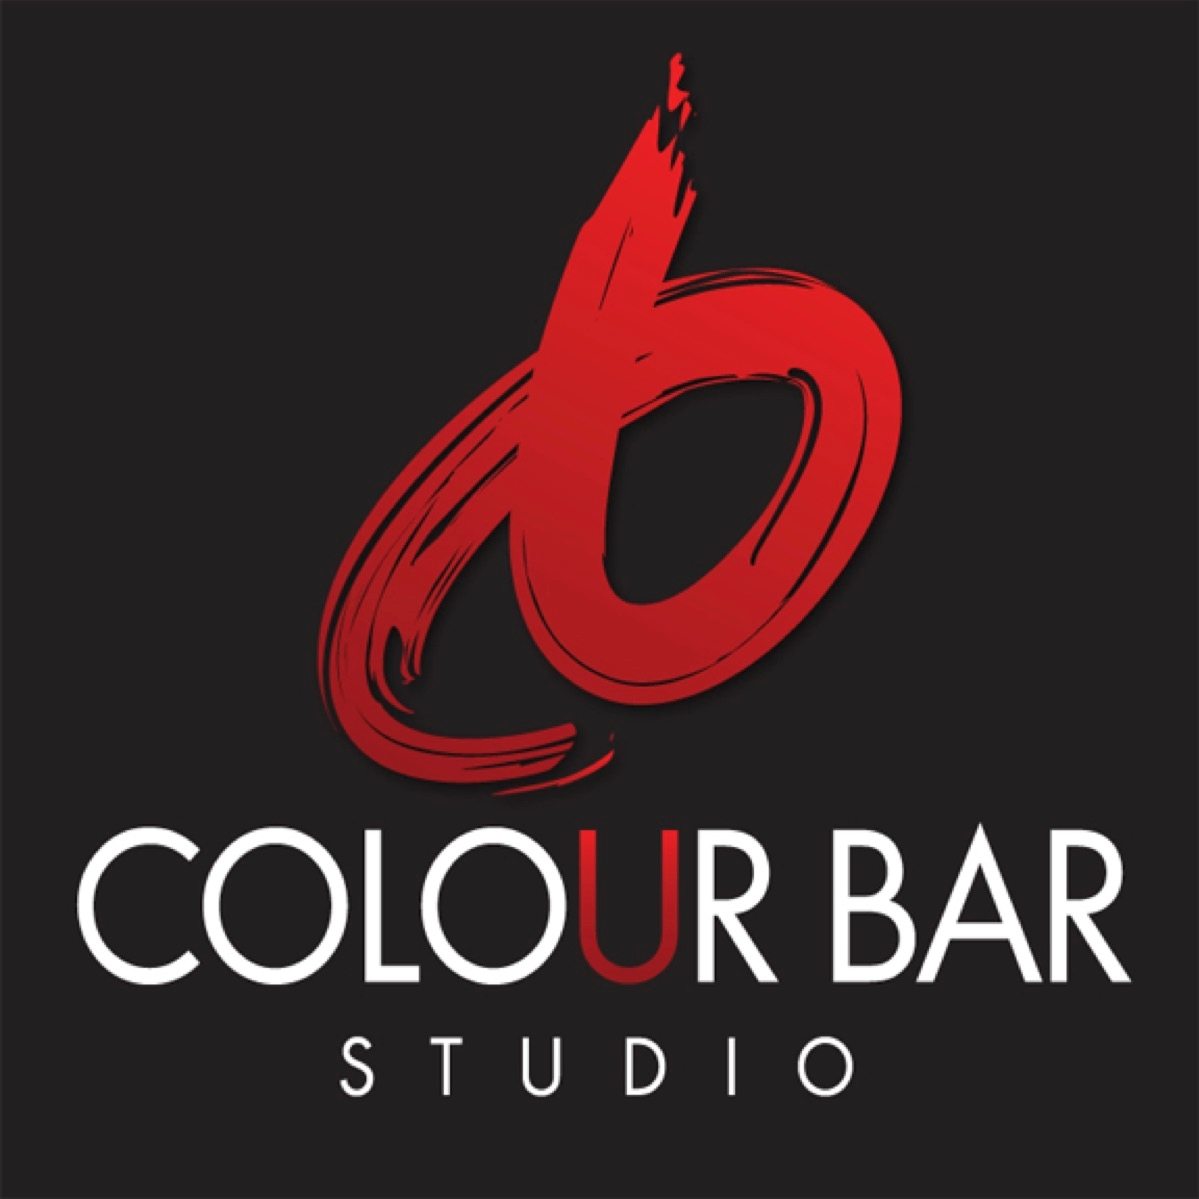 COLOUR BAR STUDIO